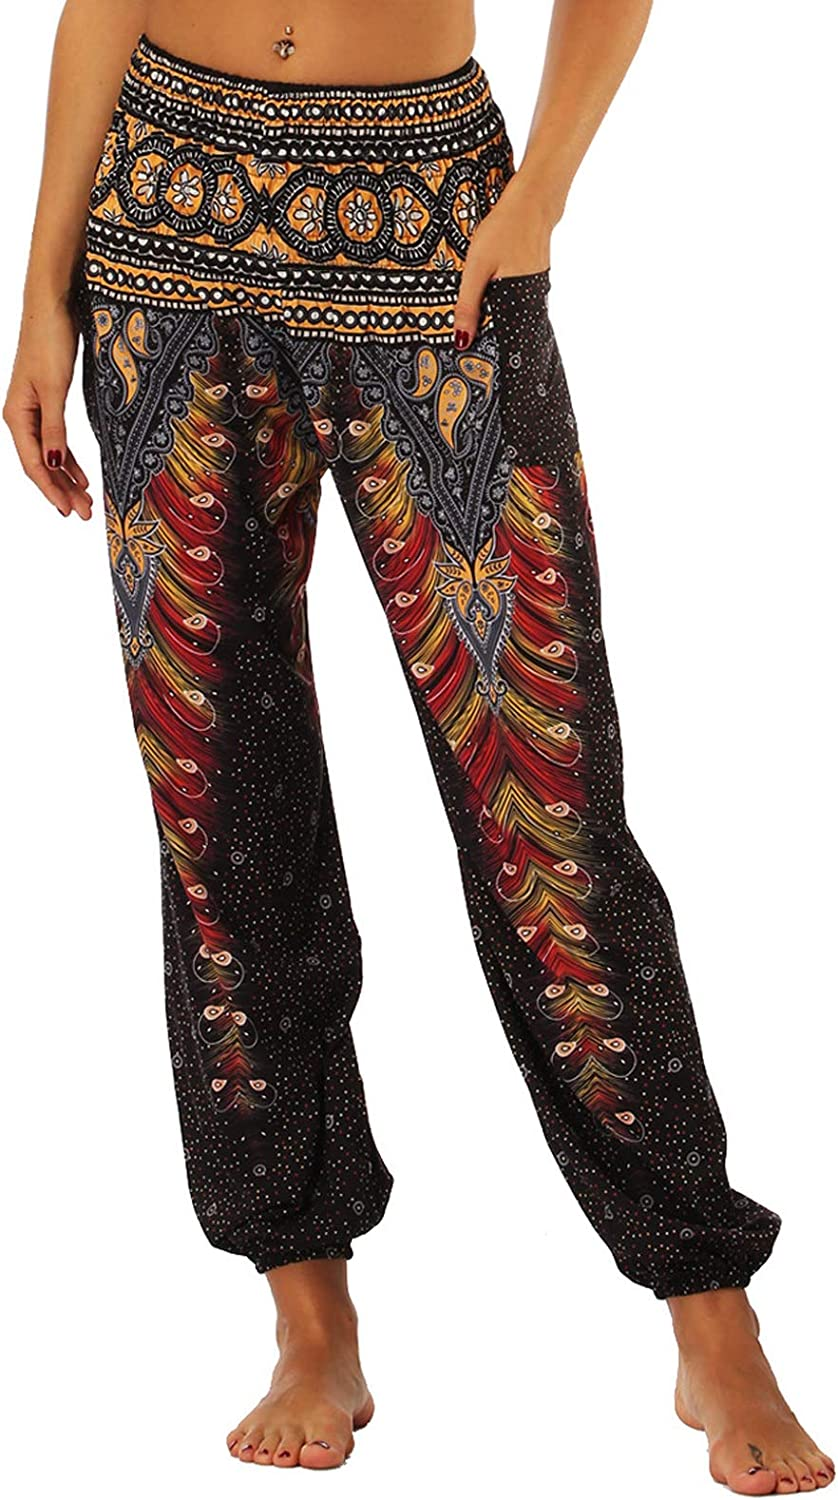 Onsoyours Womens Boho Trousers Harem Ladies Plus Size Floral Printed Loose Elastic Full Length Stretch Casual Pants with Smock Waist and Bohemian Style A Black 1